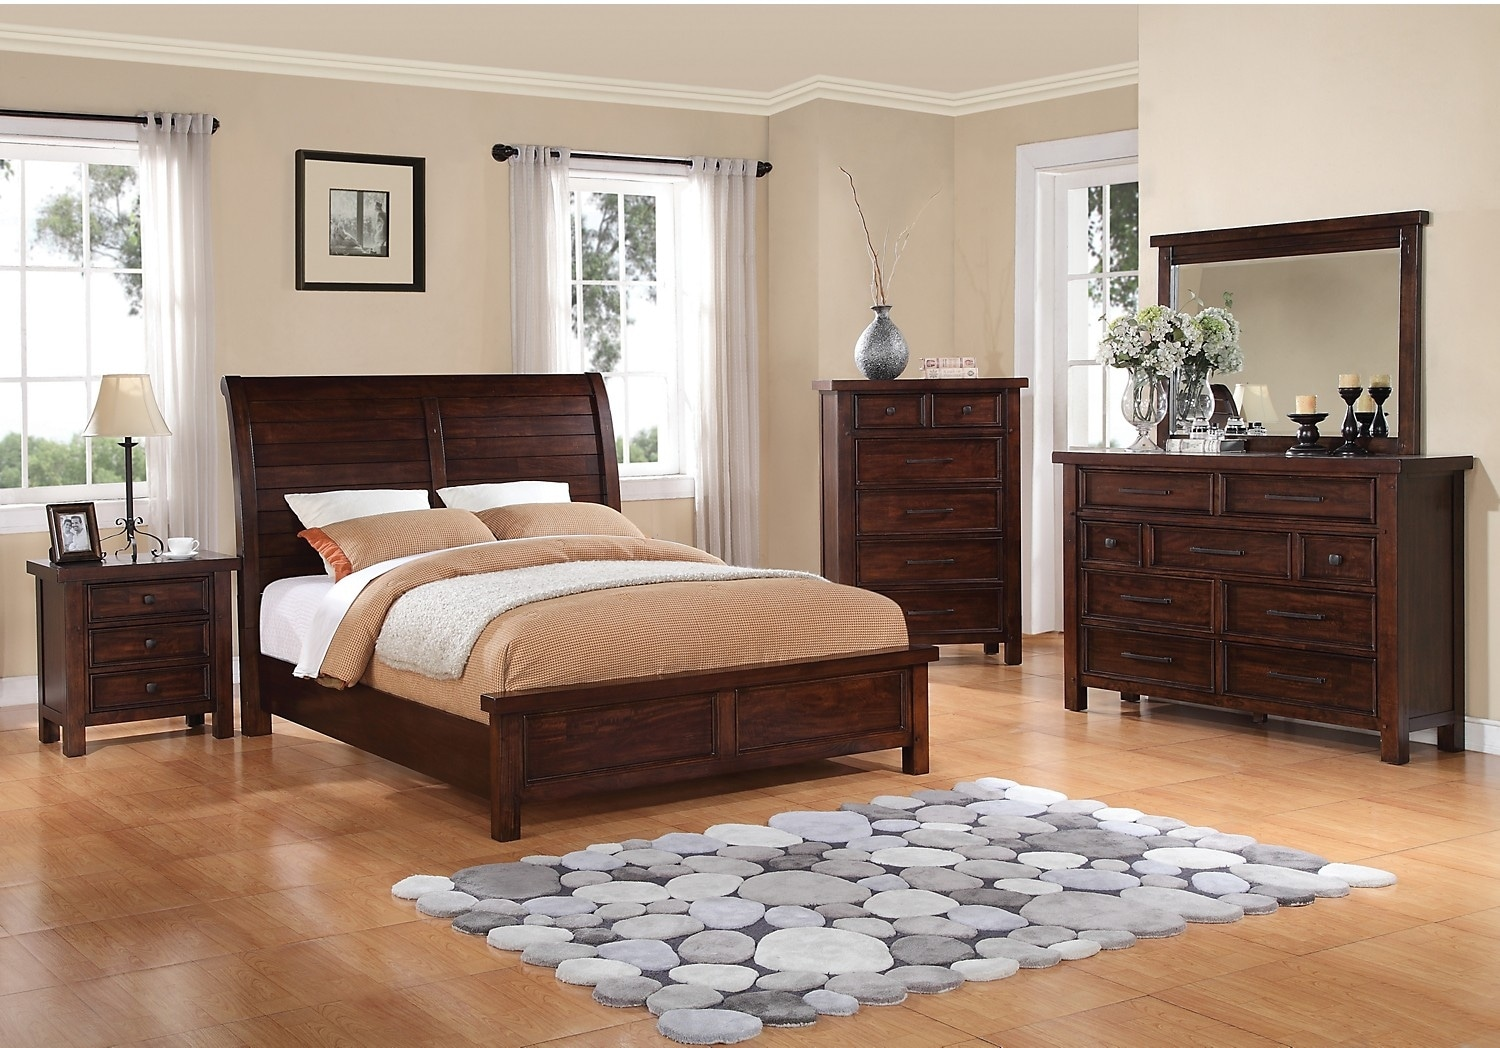 Sonoma 5-Piece Queen Bedroom Package - Dark Brown